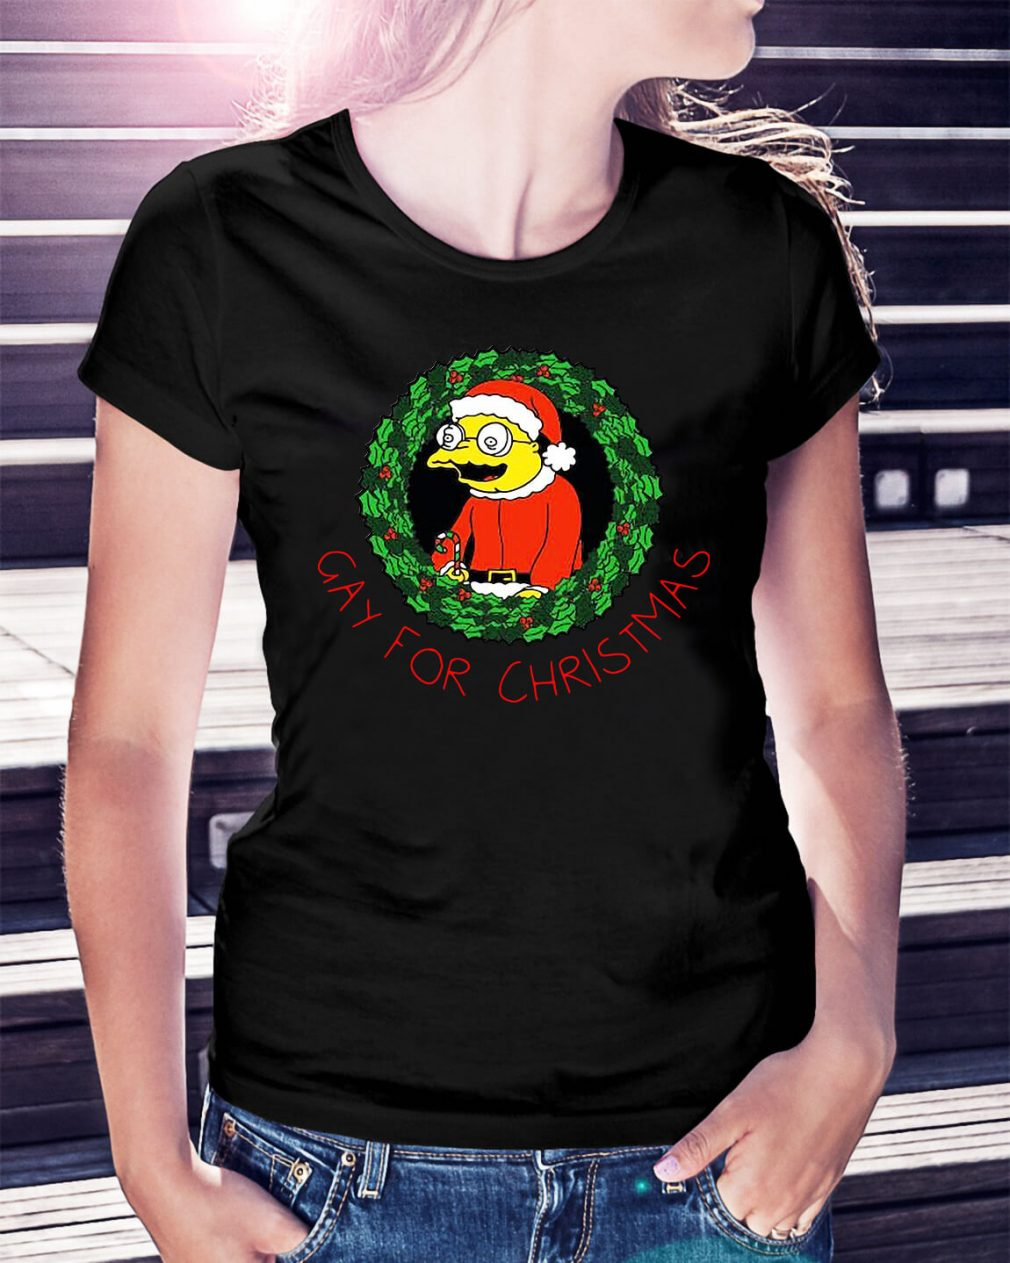 The Simpsons gay for Christmas Ladies Tee